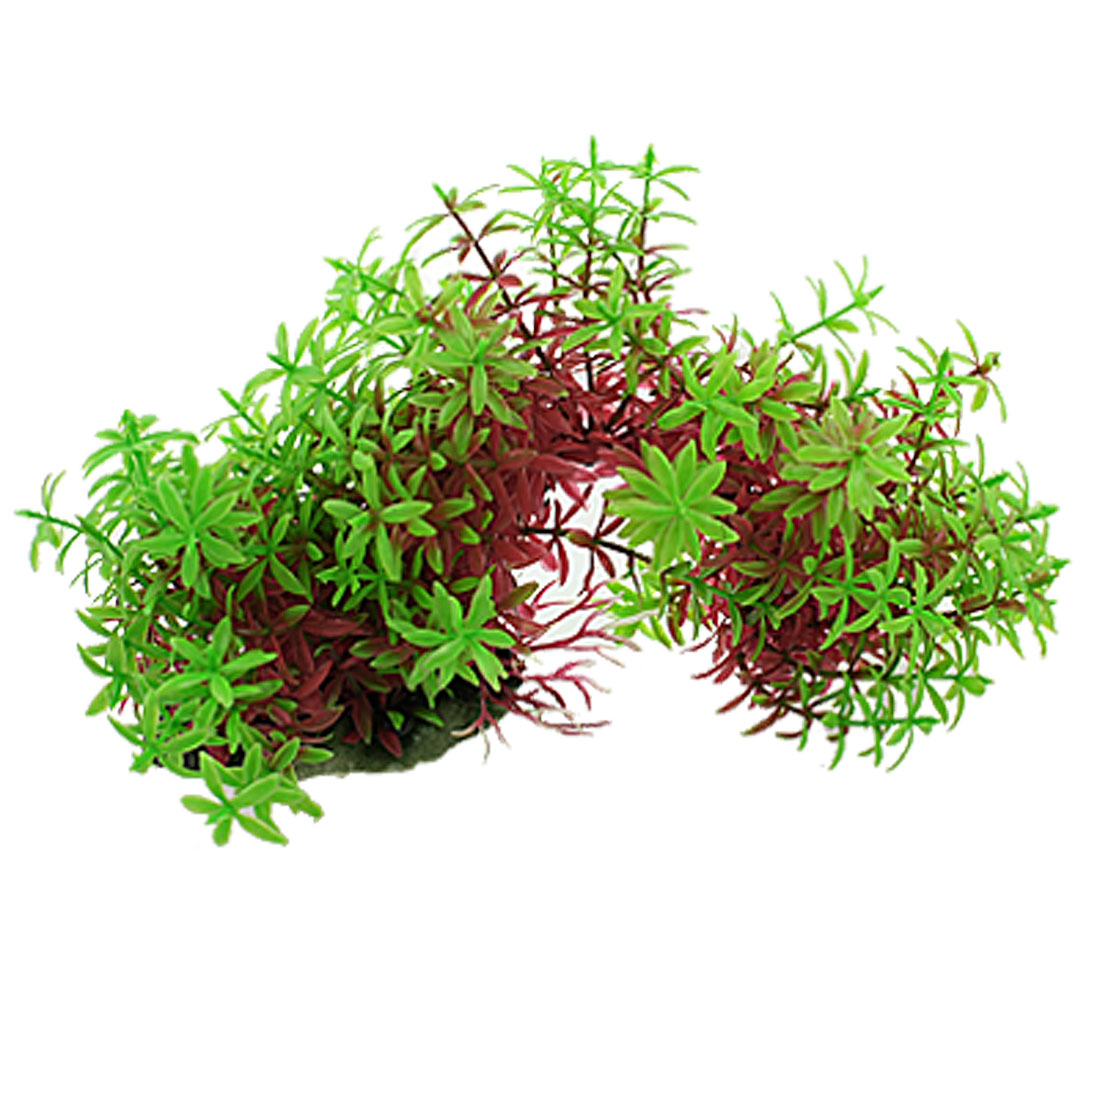 Emulational Green Red Five Leaf Curved Design Plants for Fish Tank